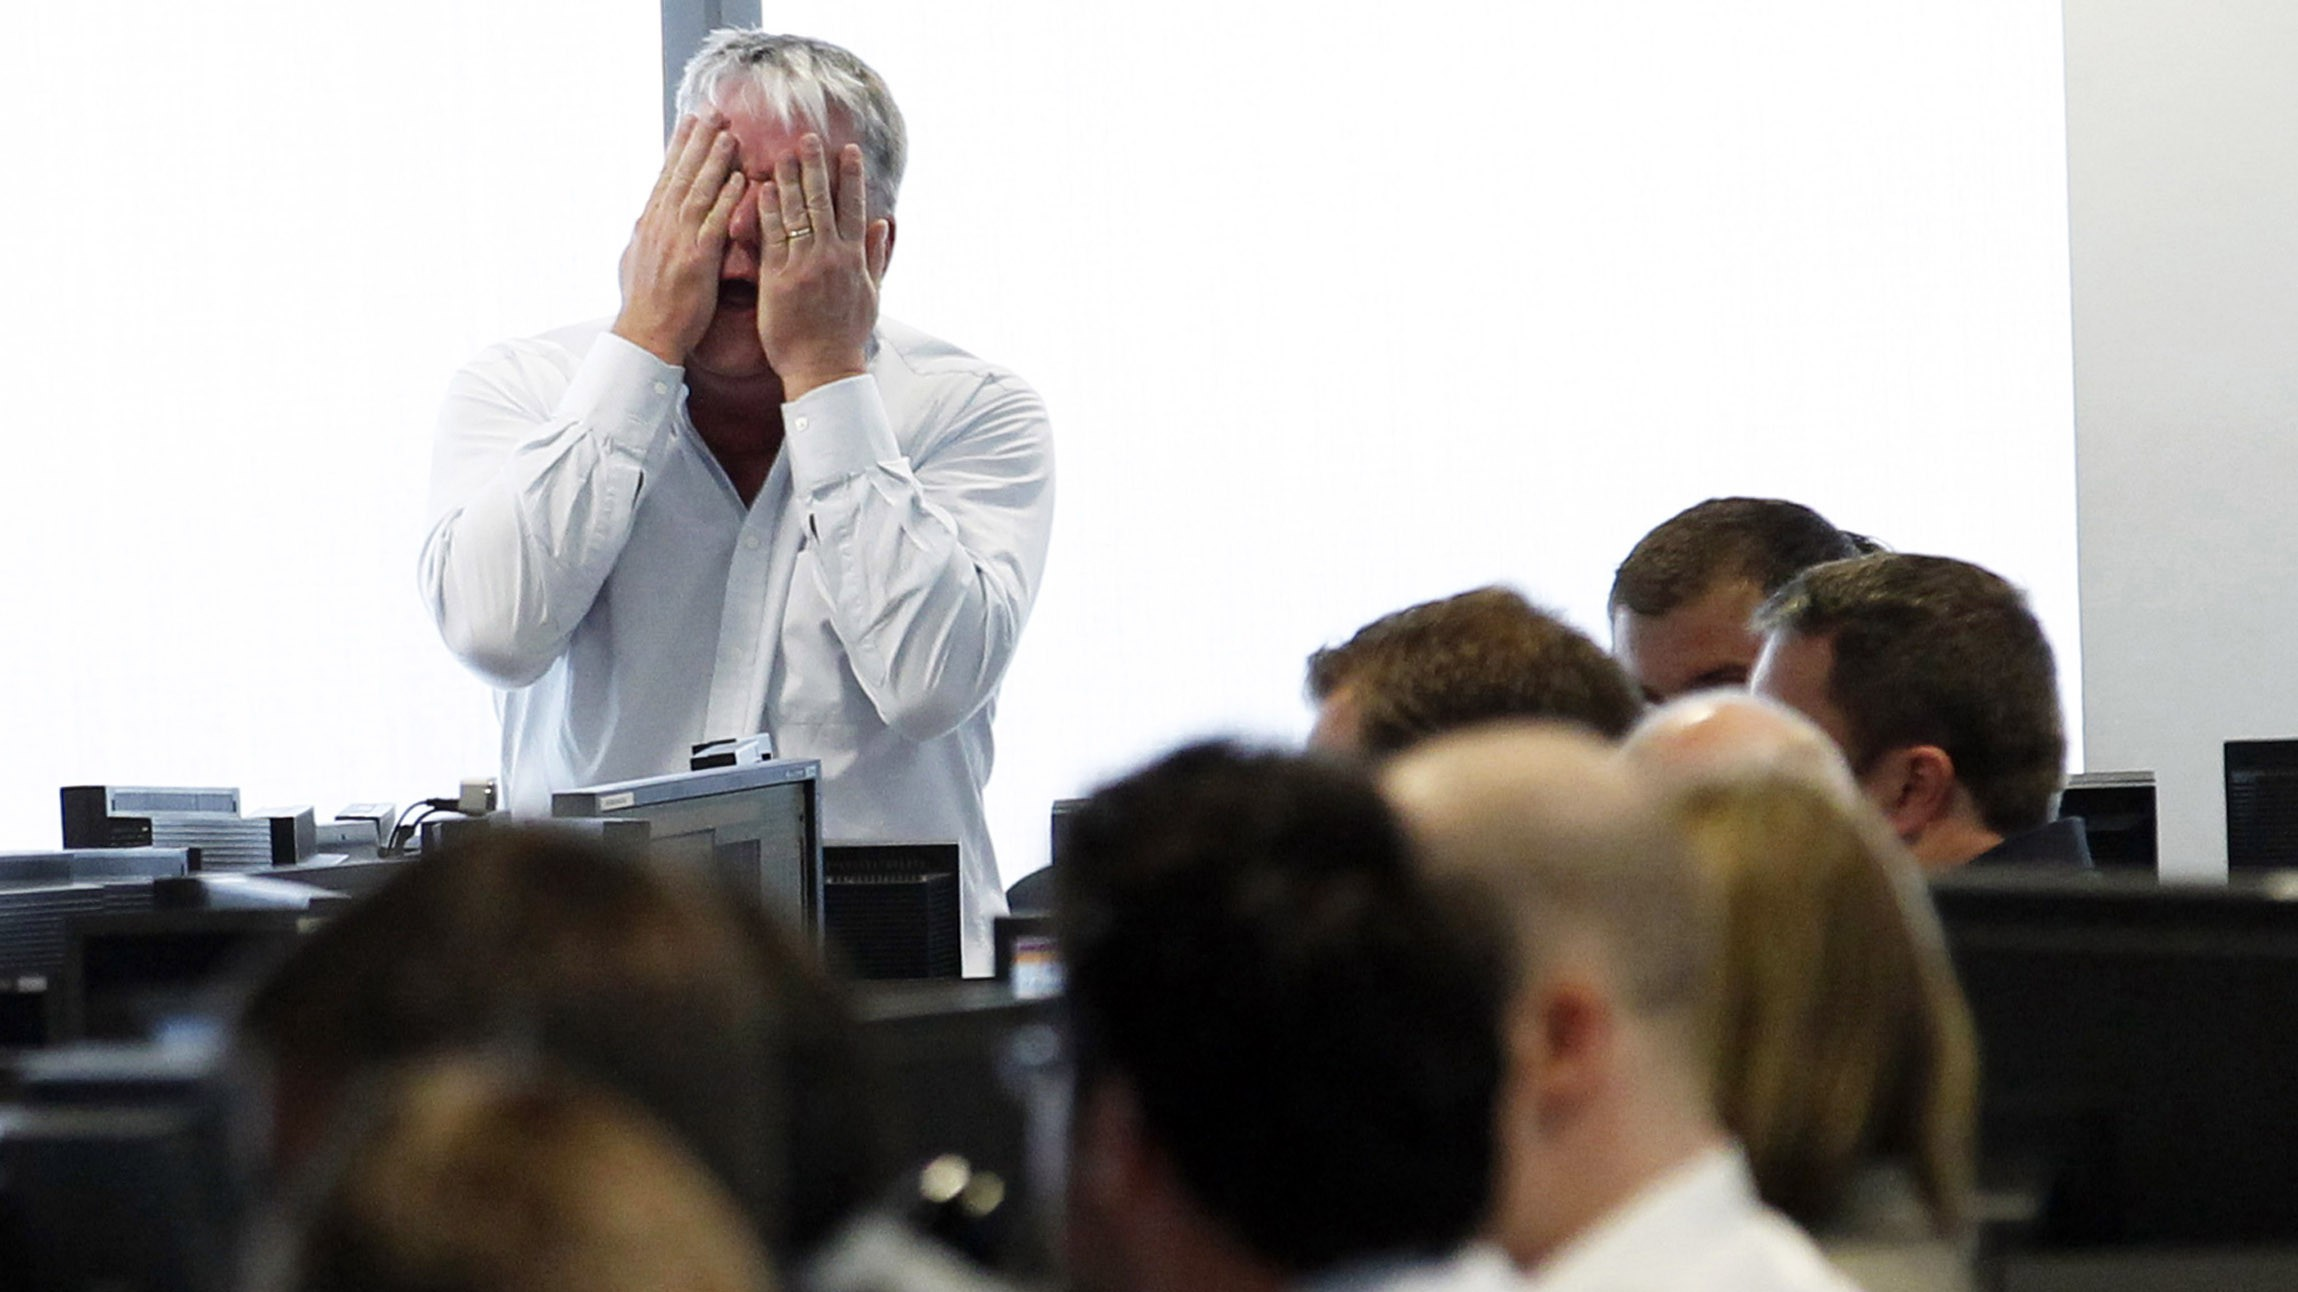 A broker reacts at BGC Partners at Canary Wharf financial district in London